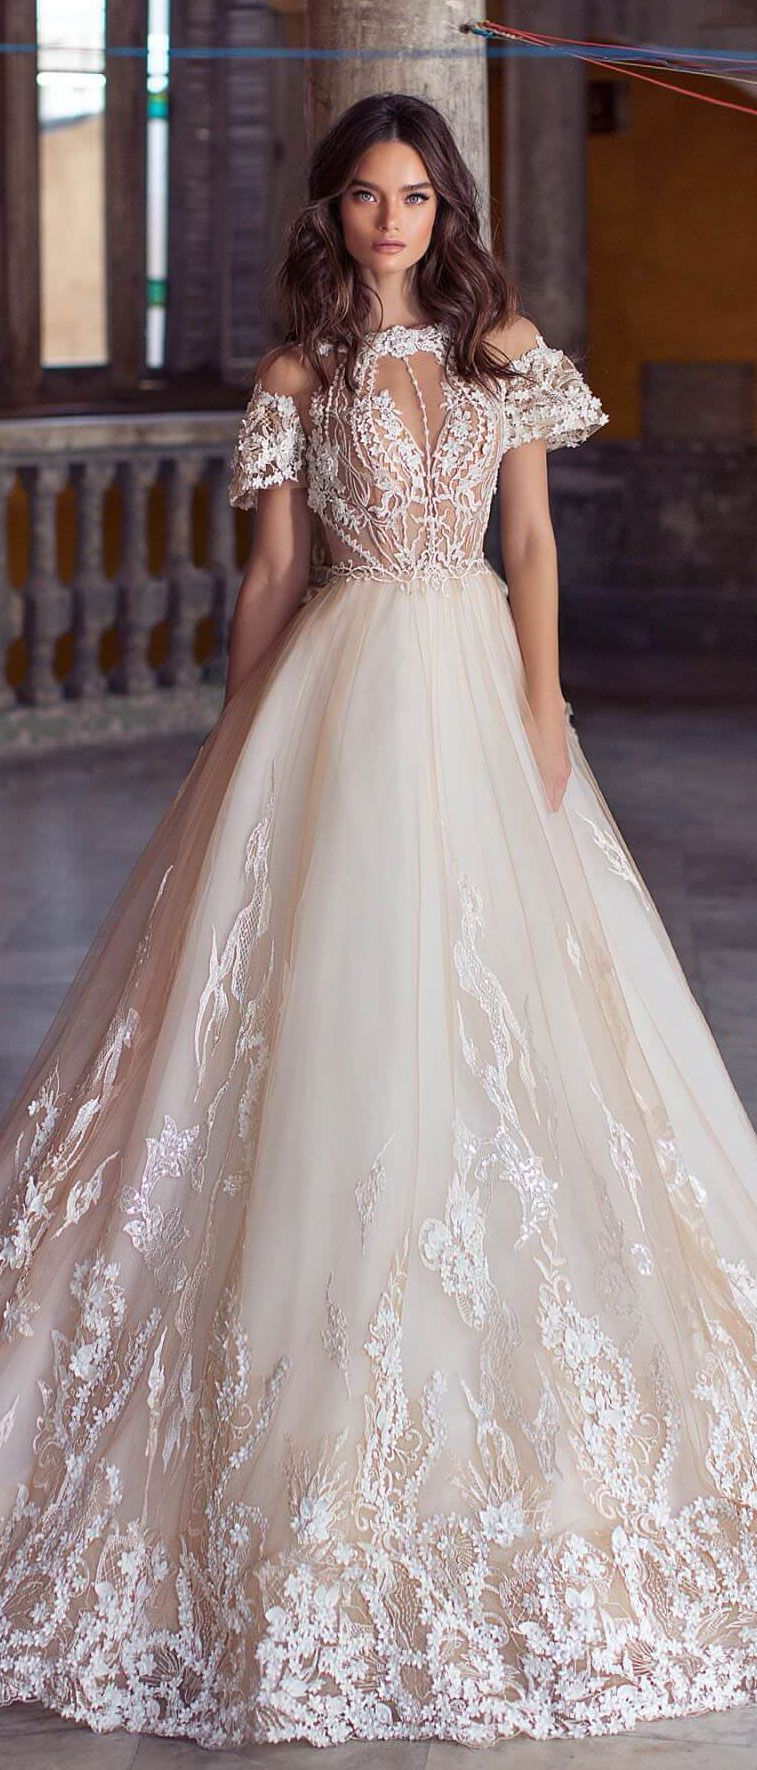 Eva lendel wedding dresses u angelic dreams bridal collection uc